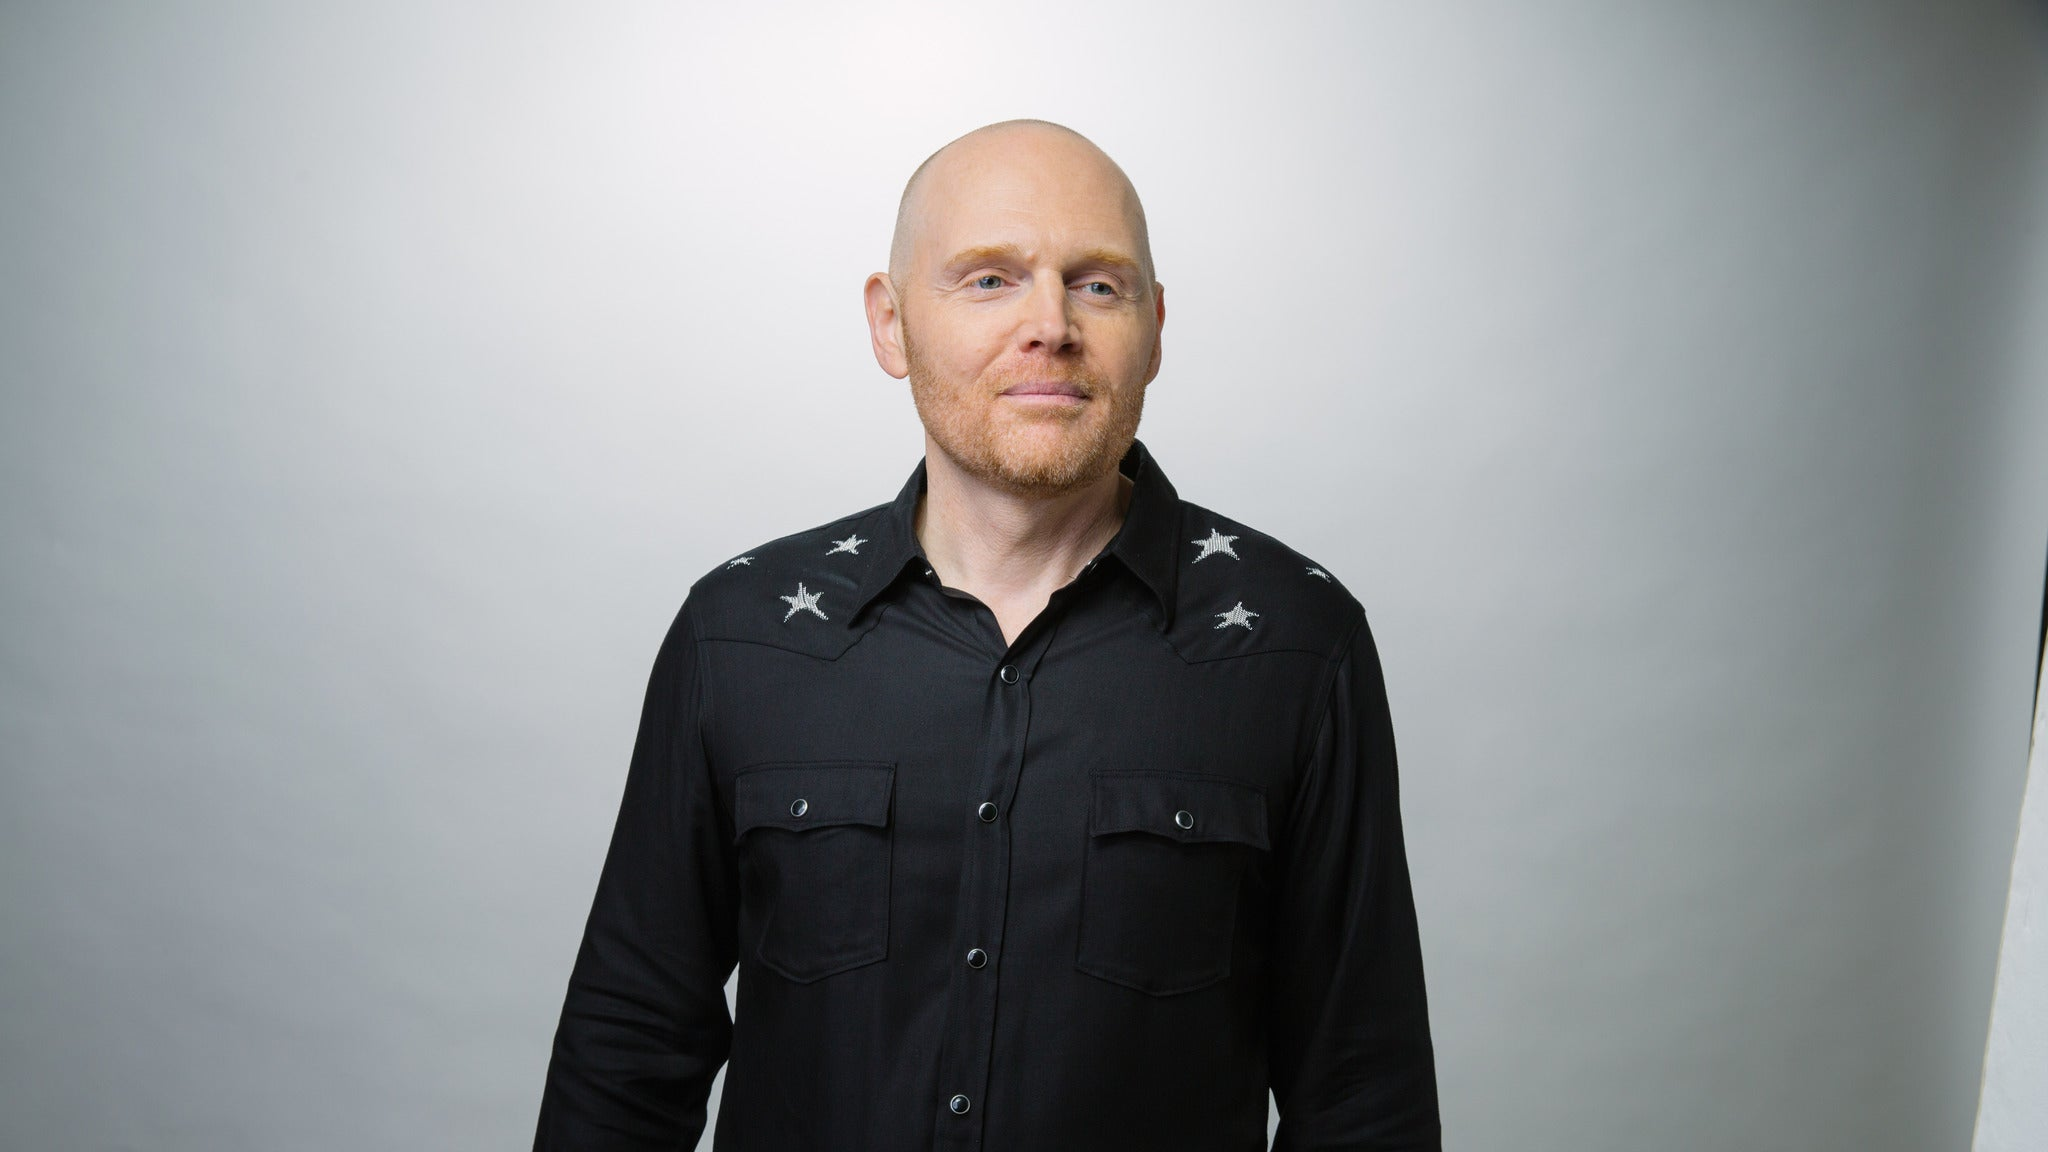 Bill Burr at Webster Bank Arena